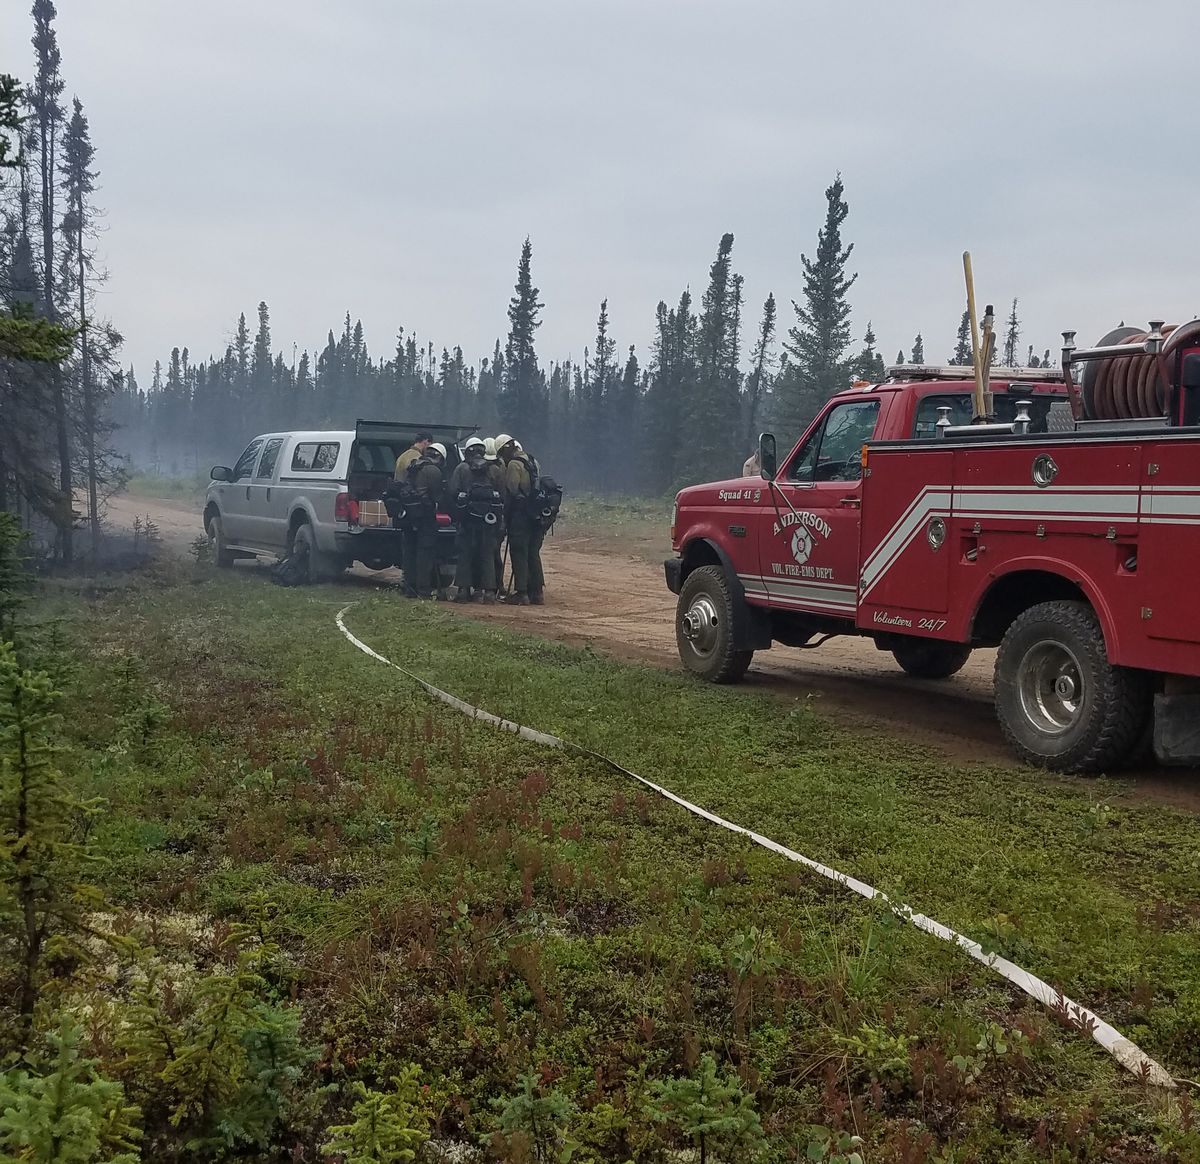 A brush truck from the Anderson Volunteer Fire Department is parked along Kobe Ag Road near the Kobe Fire on Friday morning, July 12, 2019 as members of the White Mountain Type 2 Initial Attack Crew gear up to head to the fire. (Photo courtesy Chief Scott Thompson/Anderson Volunteer Fire Department)